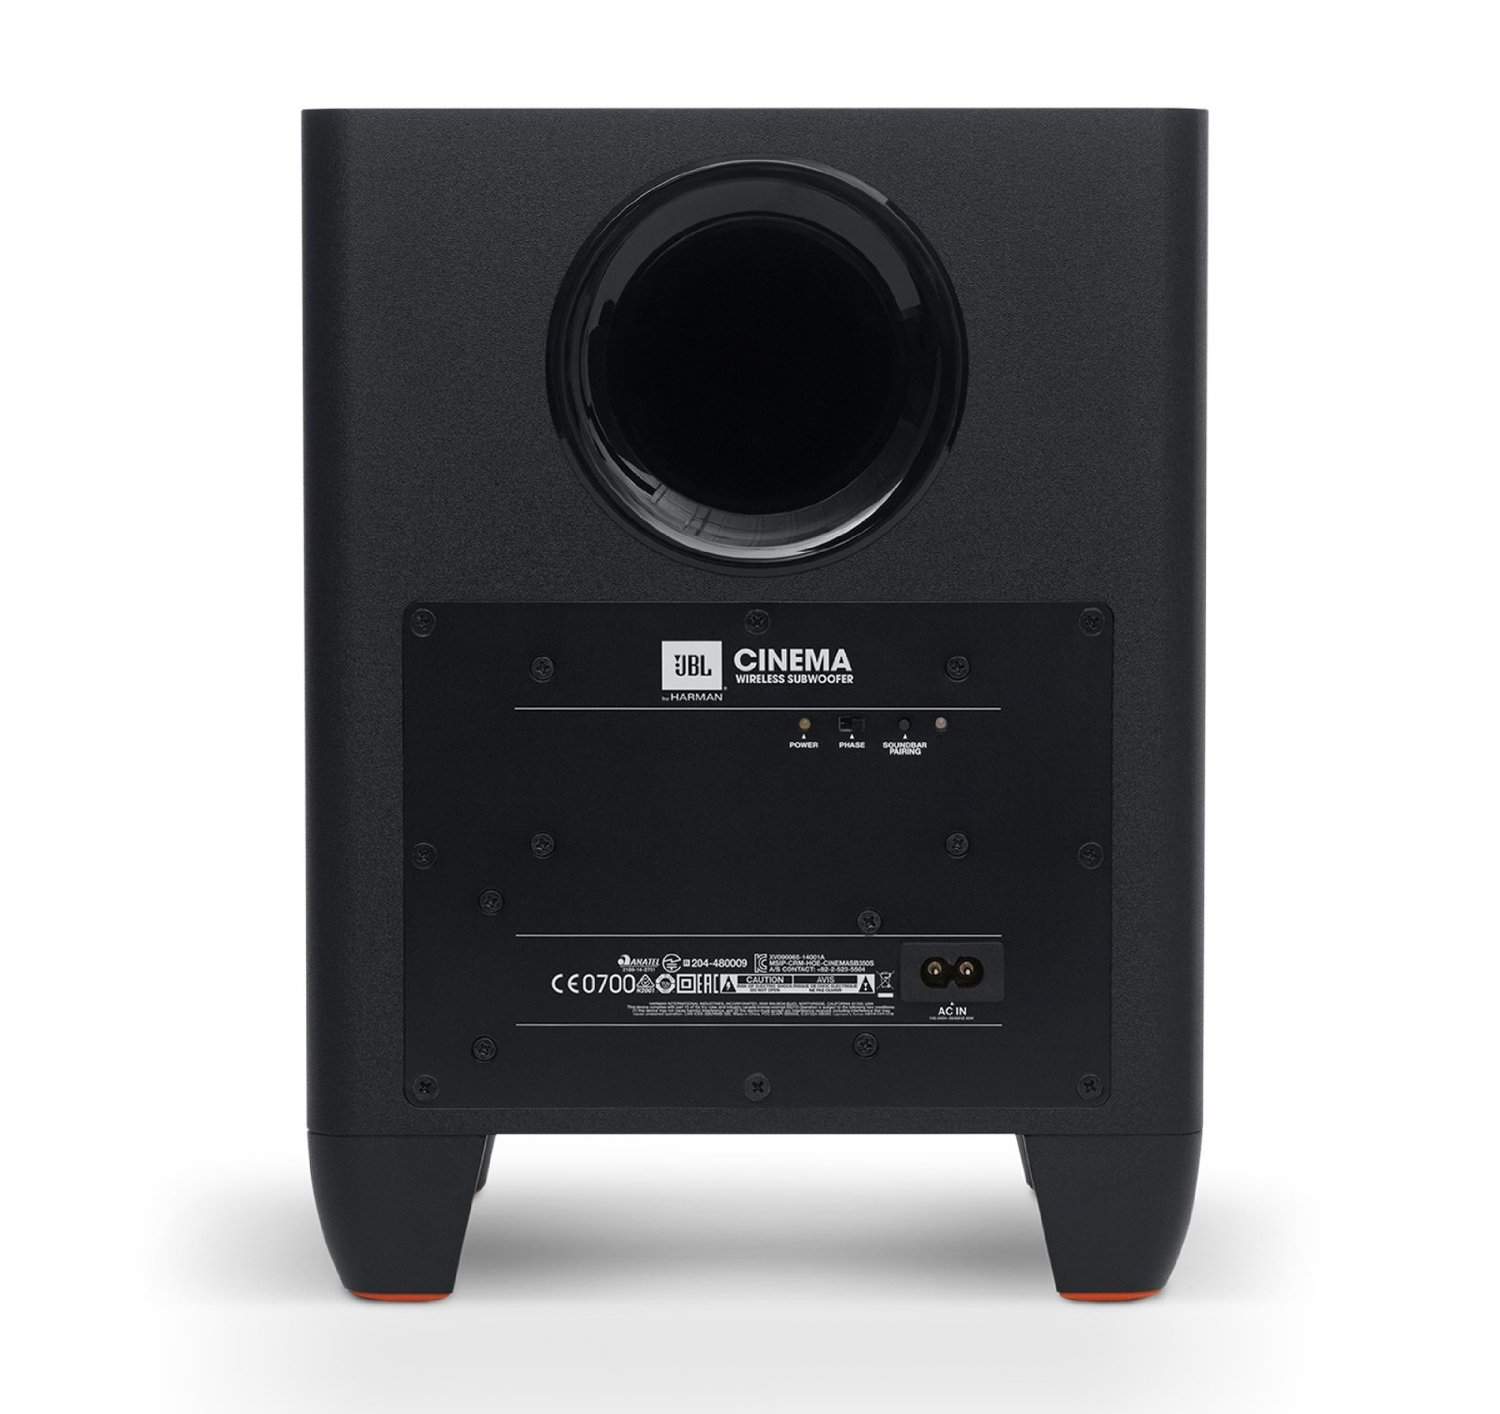 JBL Cinema SB250 subwoofer back